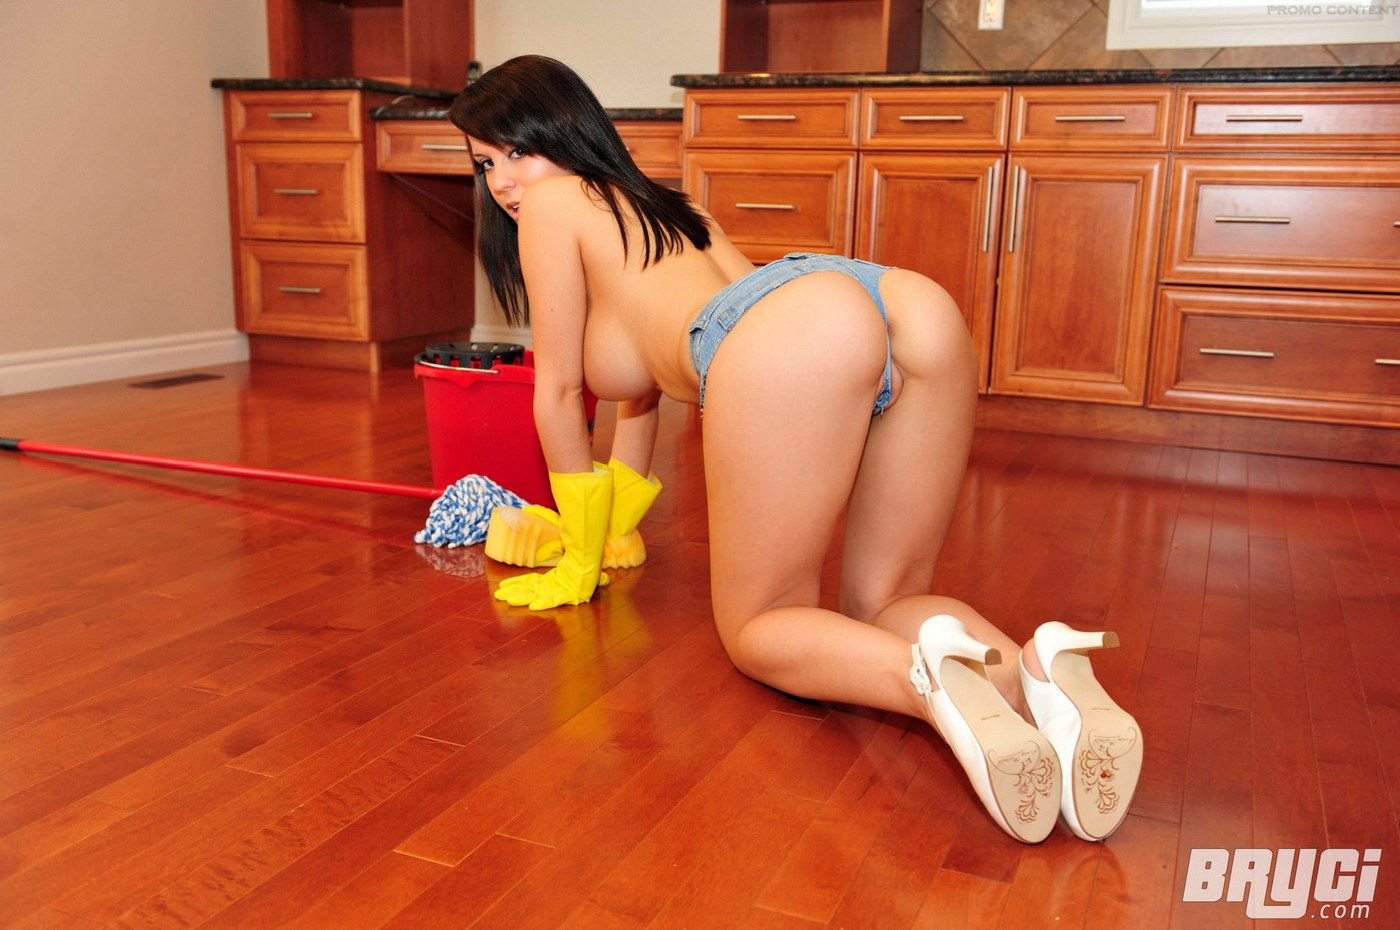 Girls cleaning house nude